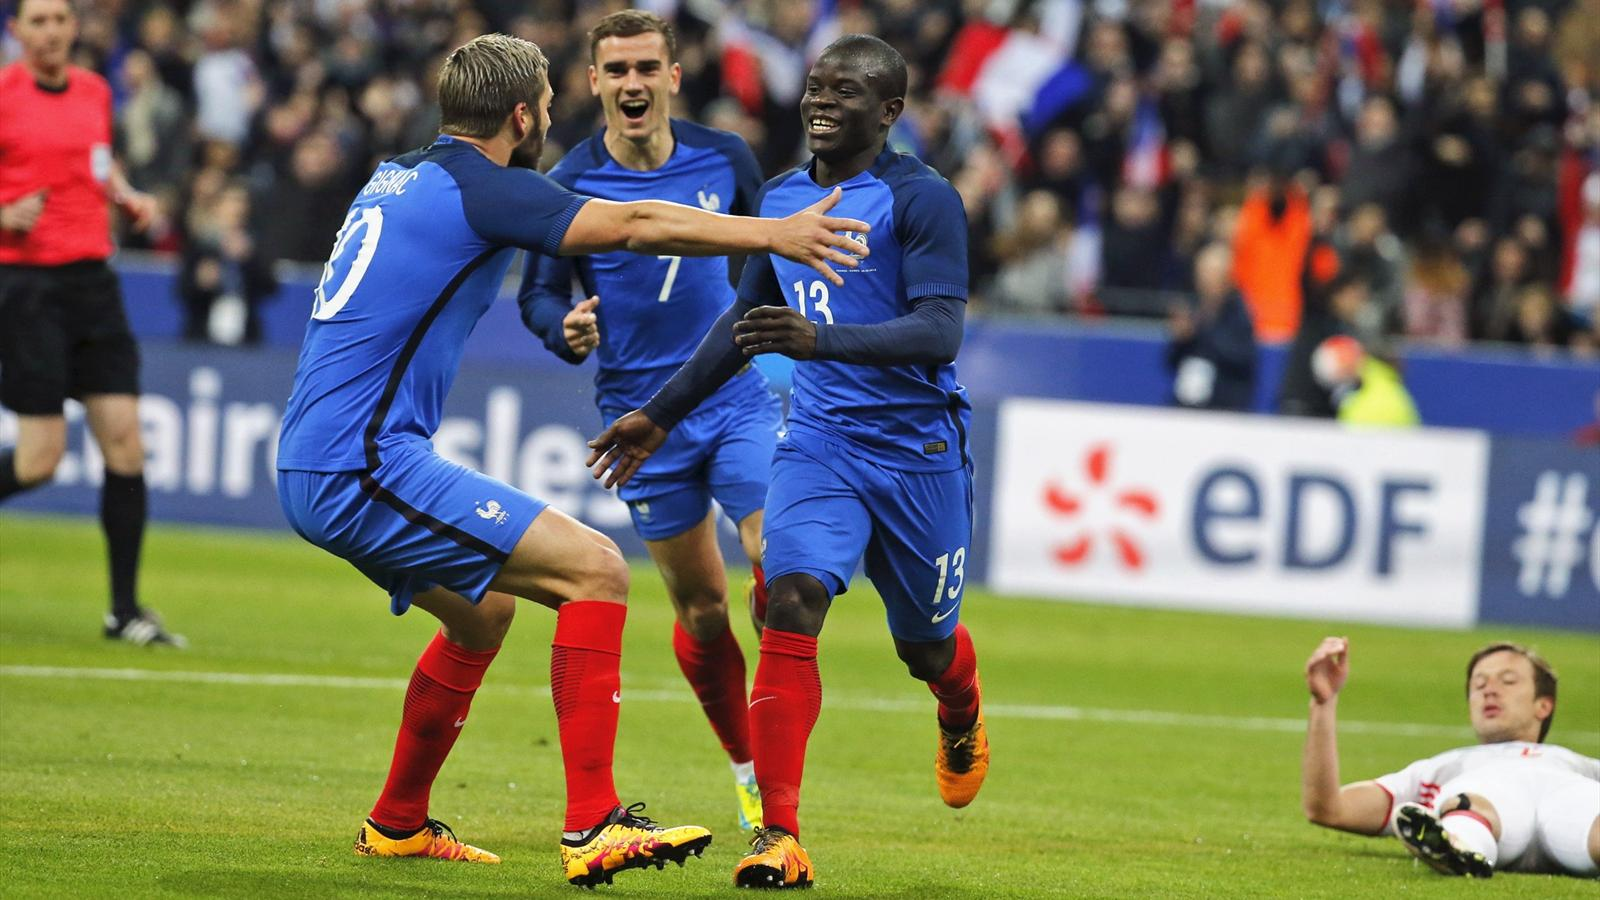 N'Golo Kante and Dimitri Payet score as France cruise past Russia - International friendlies ...